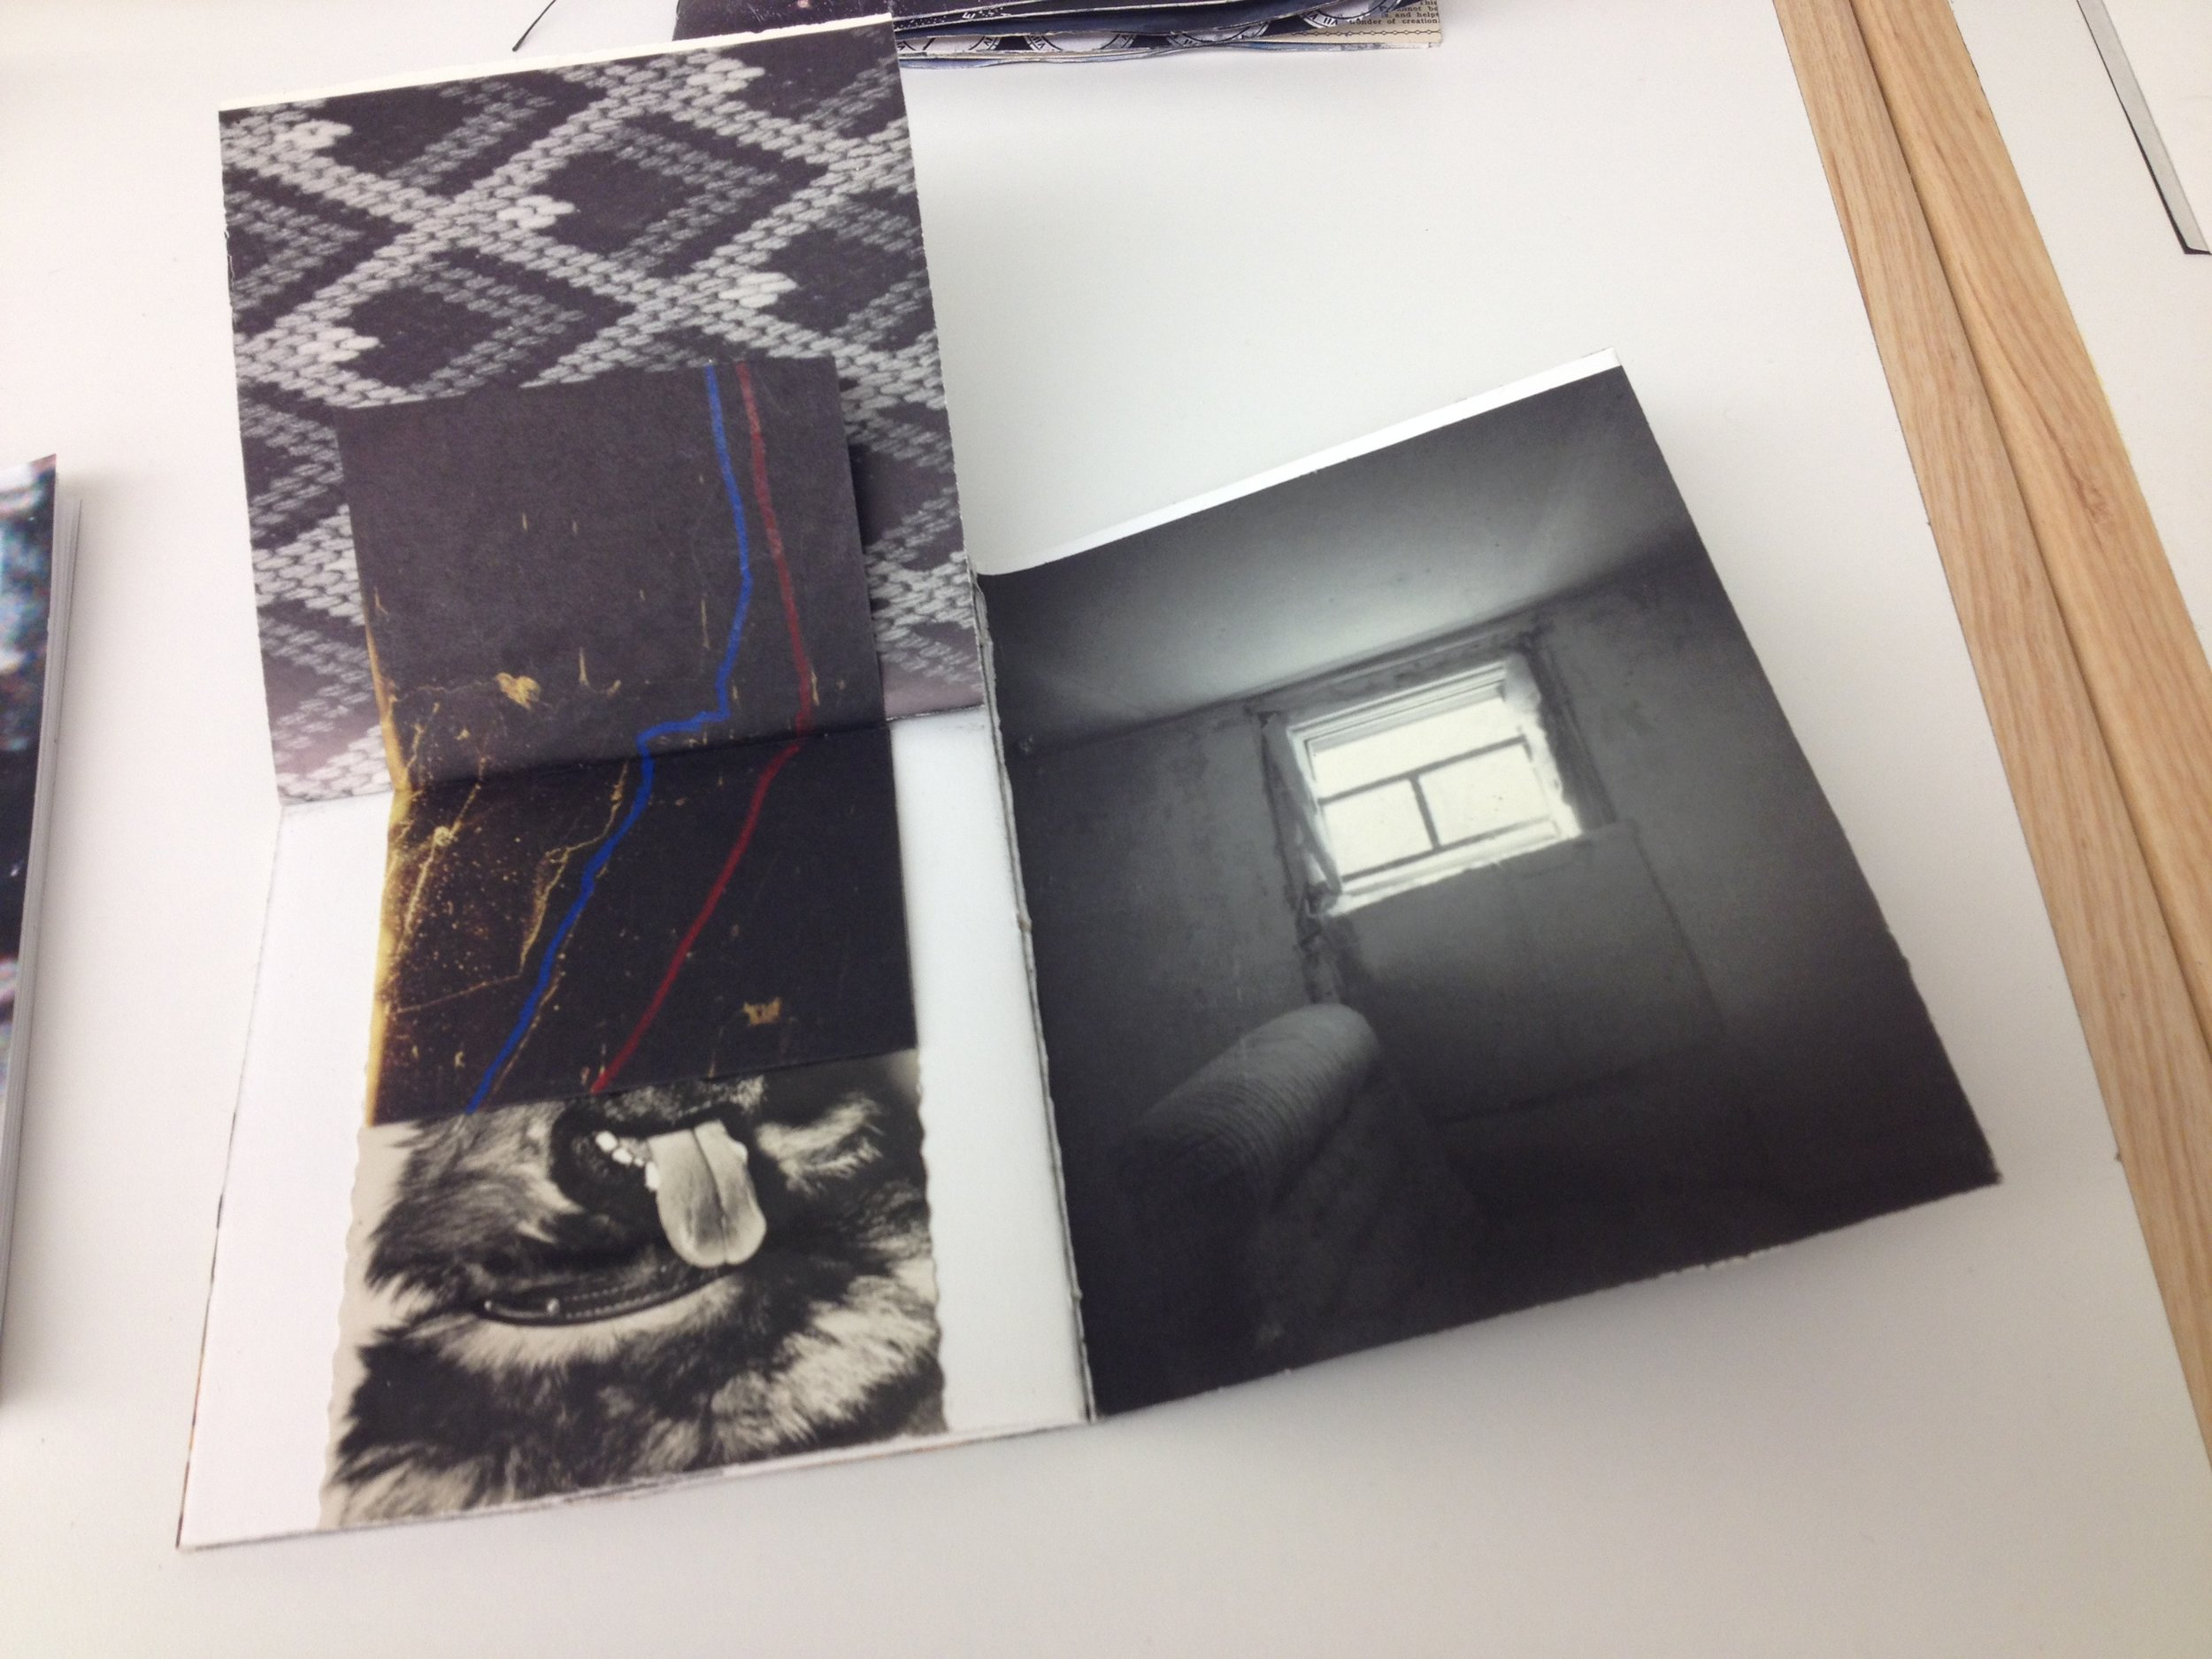 2015 book made for a prompt in Jana Harper's The What and the Why course at the Penland School of Crafts